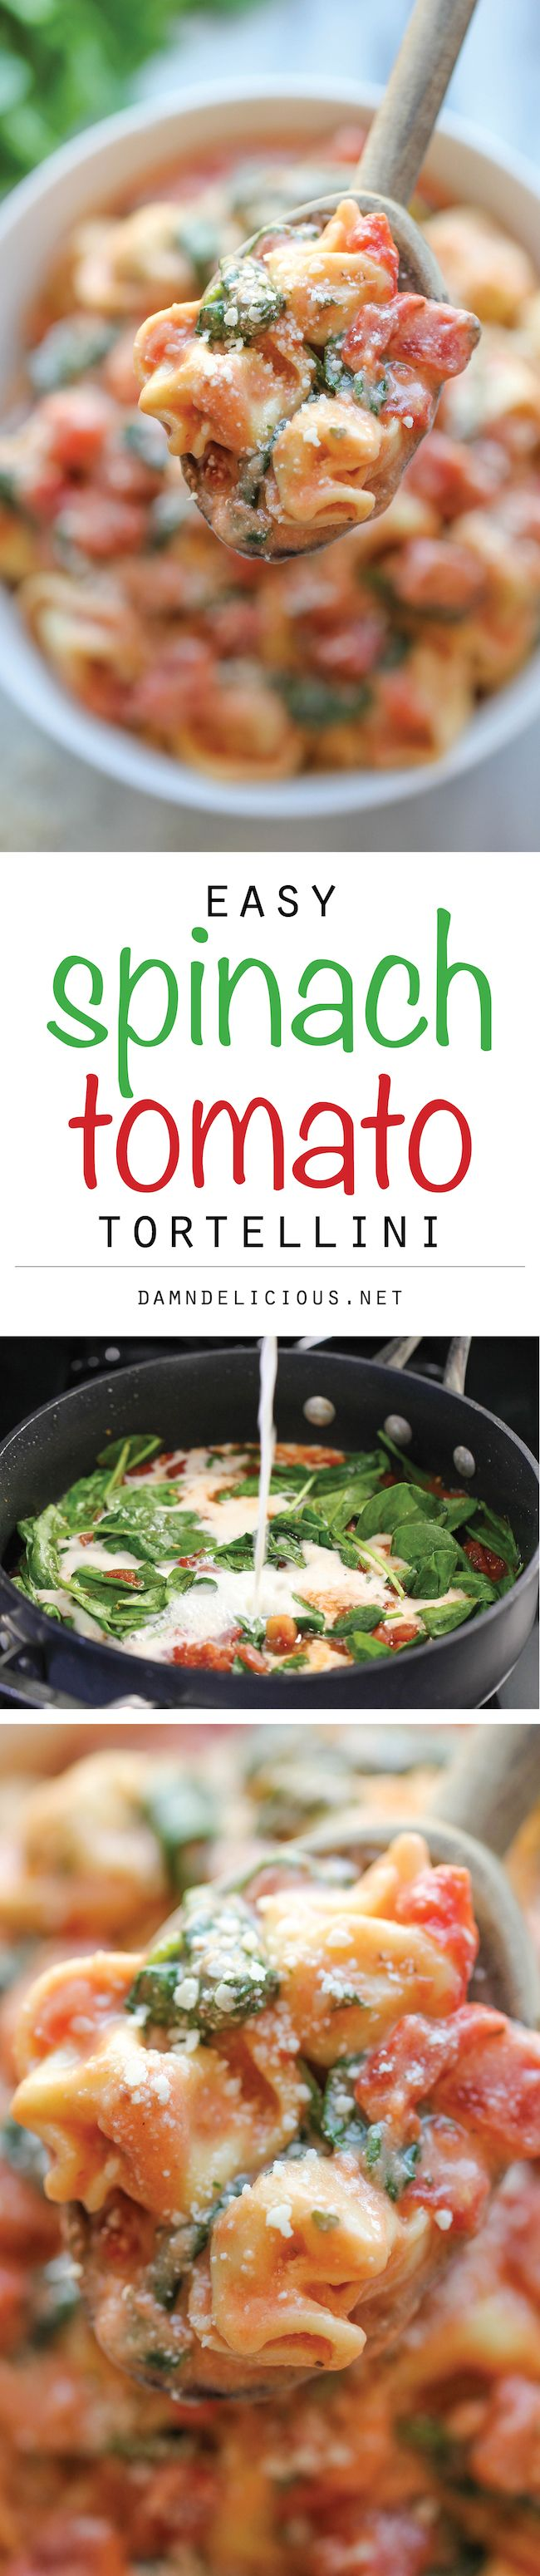 Spinach Tomato Tortellini - The most unbelievably creamy tortellini you will make in just 15 min. Doesn't get easier or tastier than that!